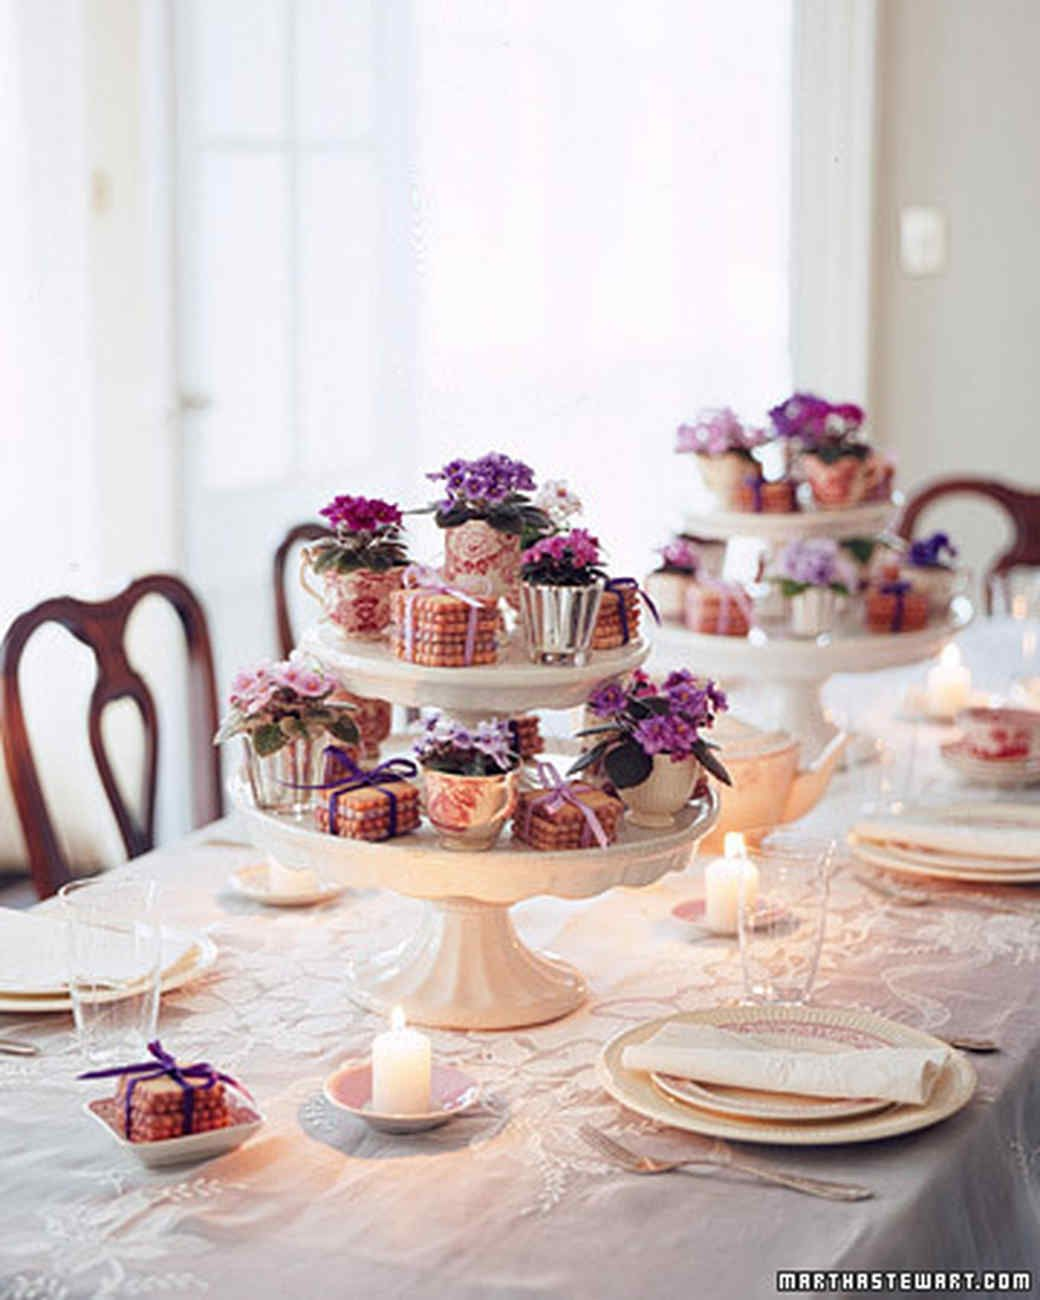 Cake Stand Centerpiece Dining Table Centerpieces | Martha Stewart Living — Utilize that tiered cake stand for an impressive, creative centerpiece!